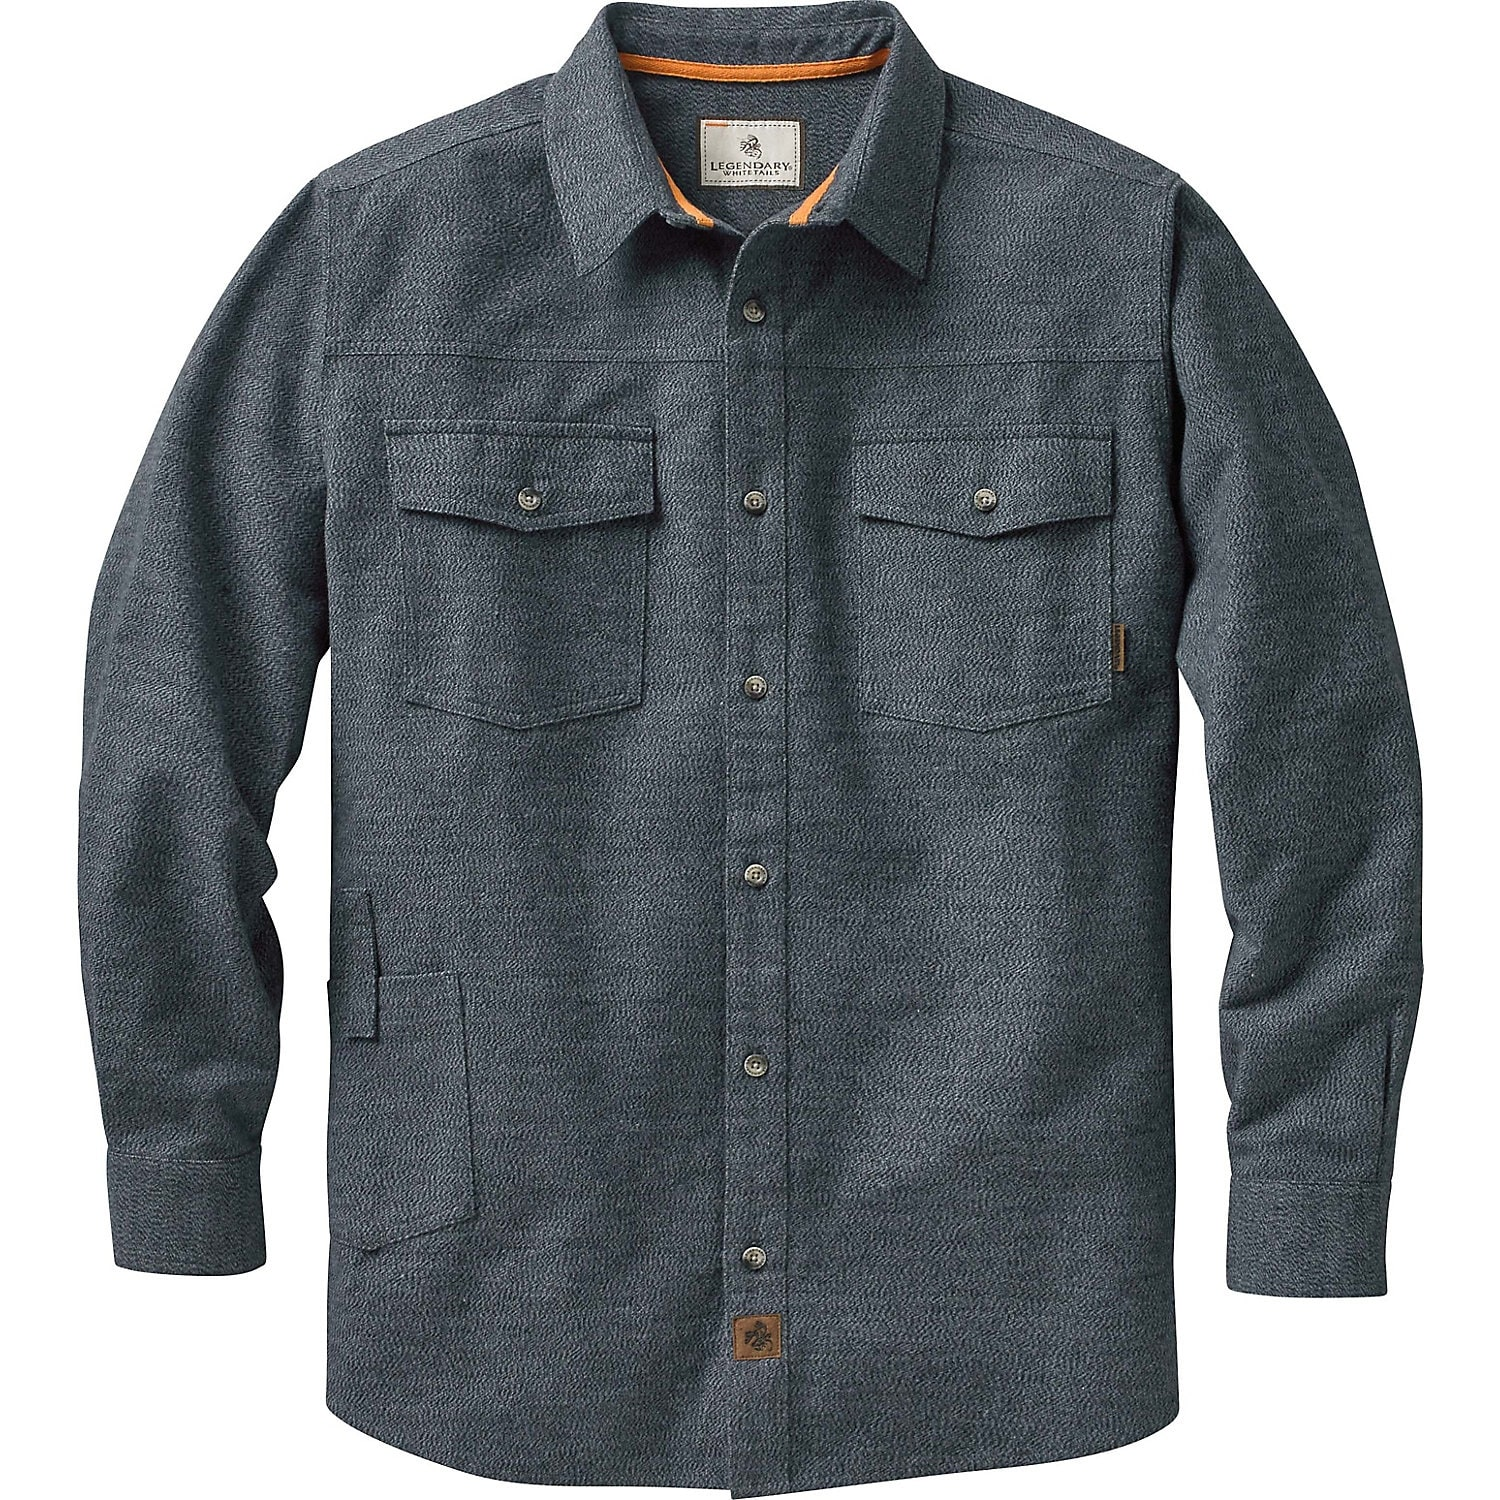 dca1212765d78e Shop Legendary Whitetails Men's Traditions Heavy Weight Chamois Shirt -  Free Shipping On Orders Over $45 - Overstock - 18406344